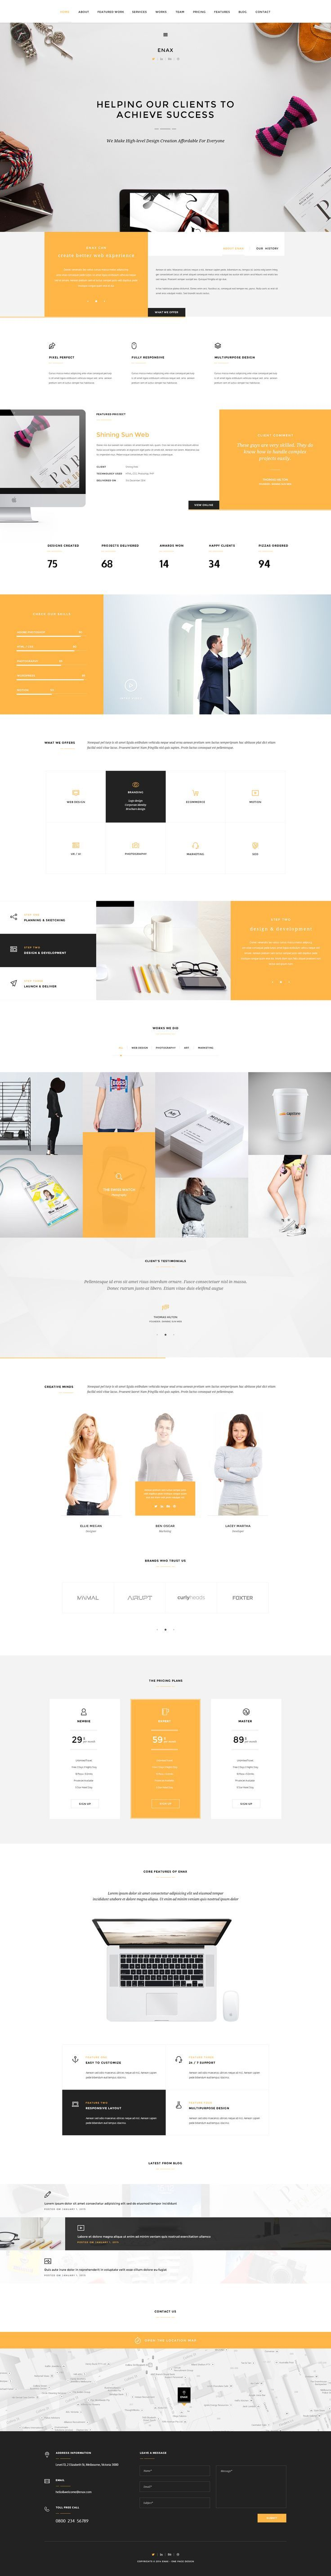 Enax – One Page MultiPurpose Parallax Published by Maan Ali